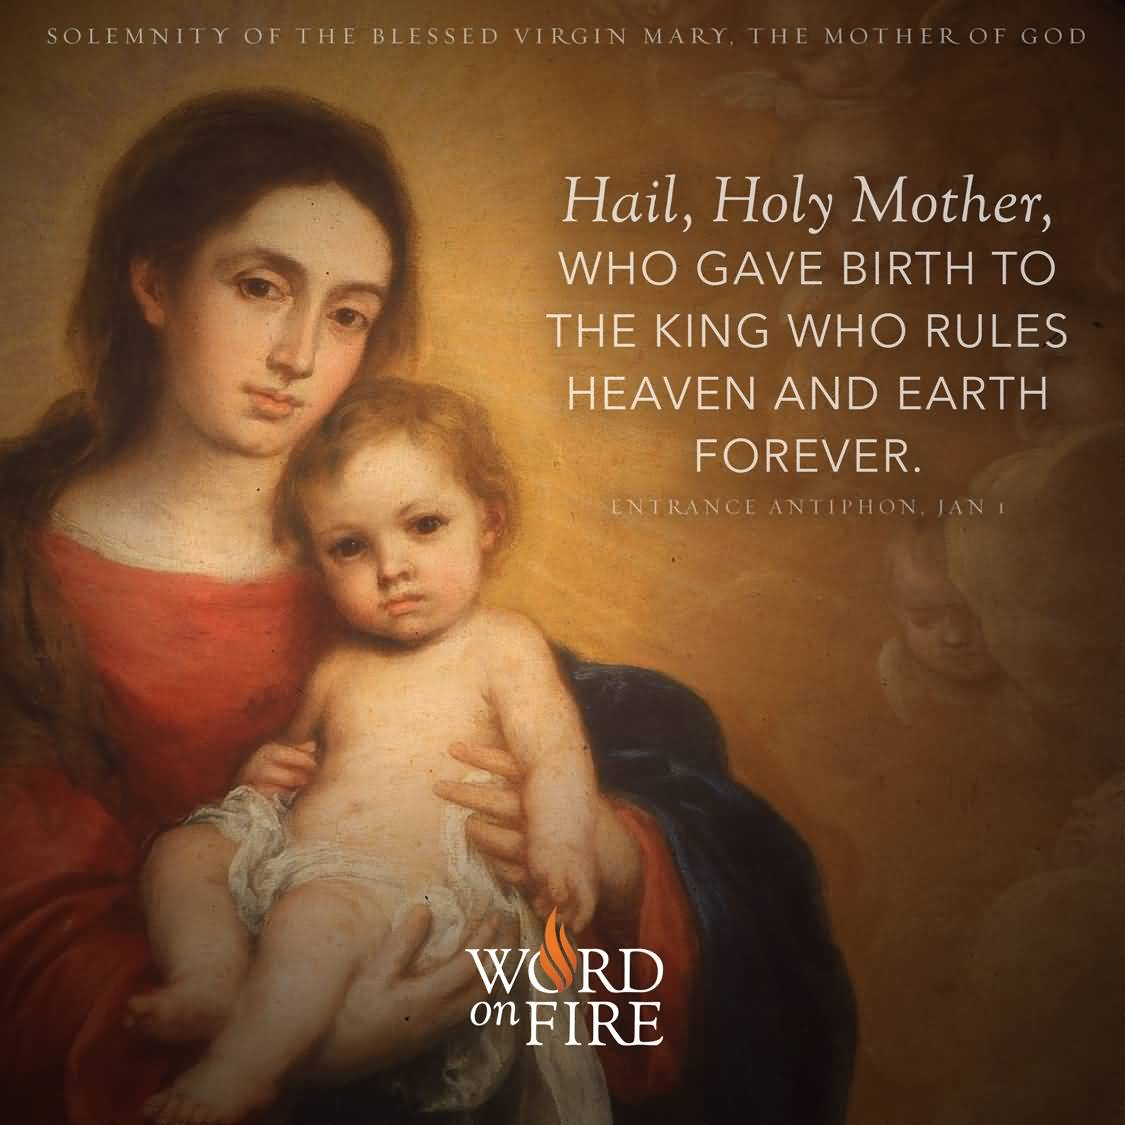 Mother Of God Movie Quote: 25 Solemnity Of Mary Mother Wish Pictures And Images